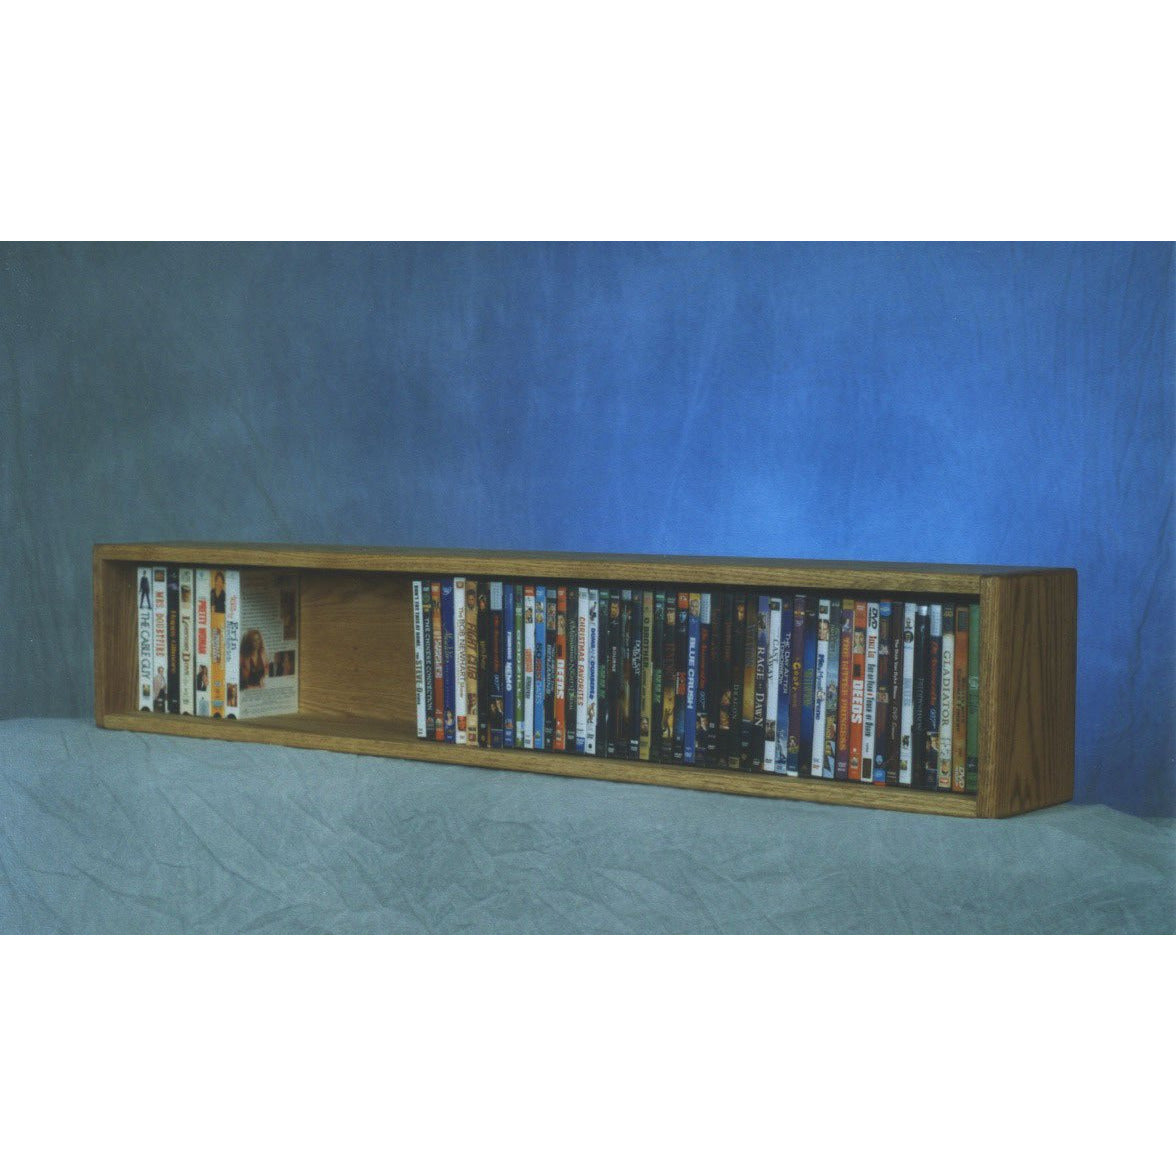 10 Series Blu-ray or Combination Cabinets - 8 sizes